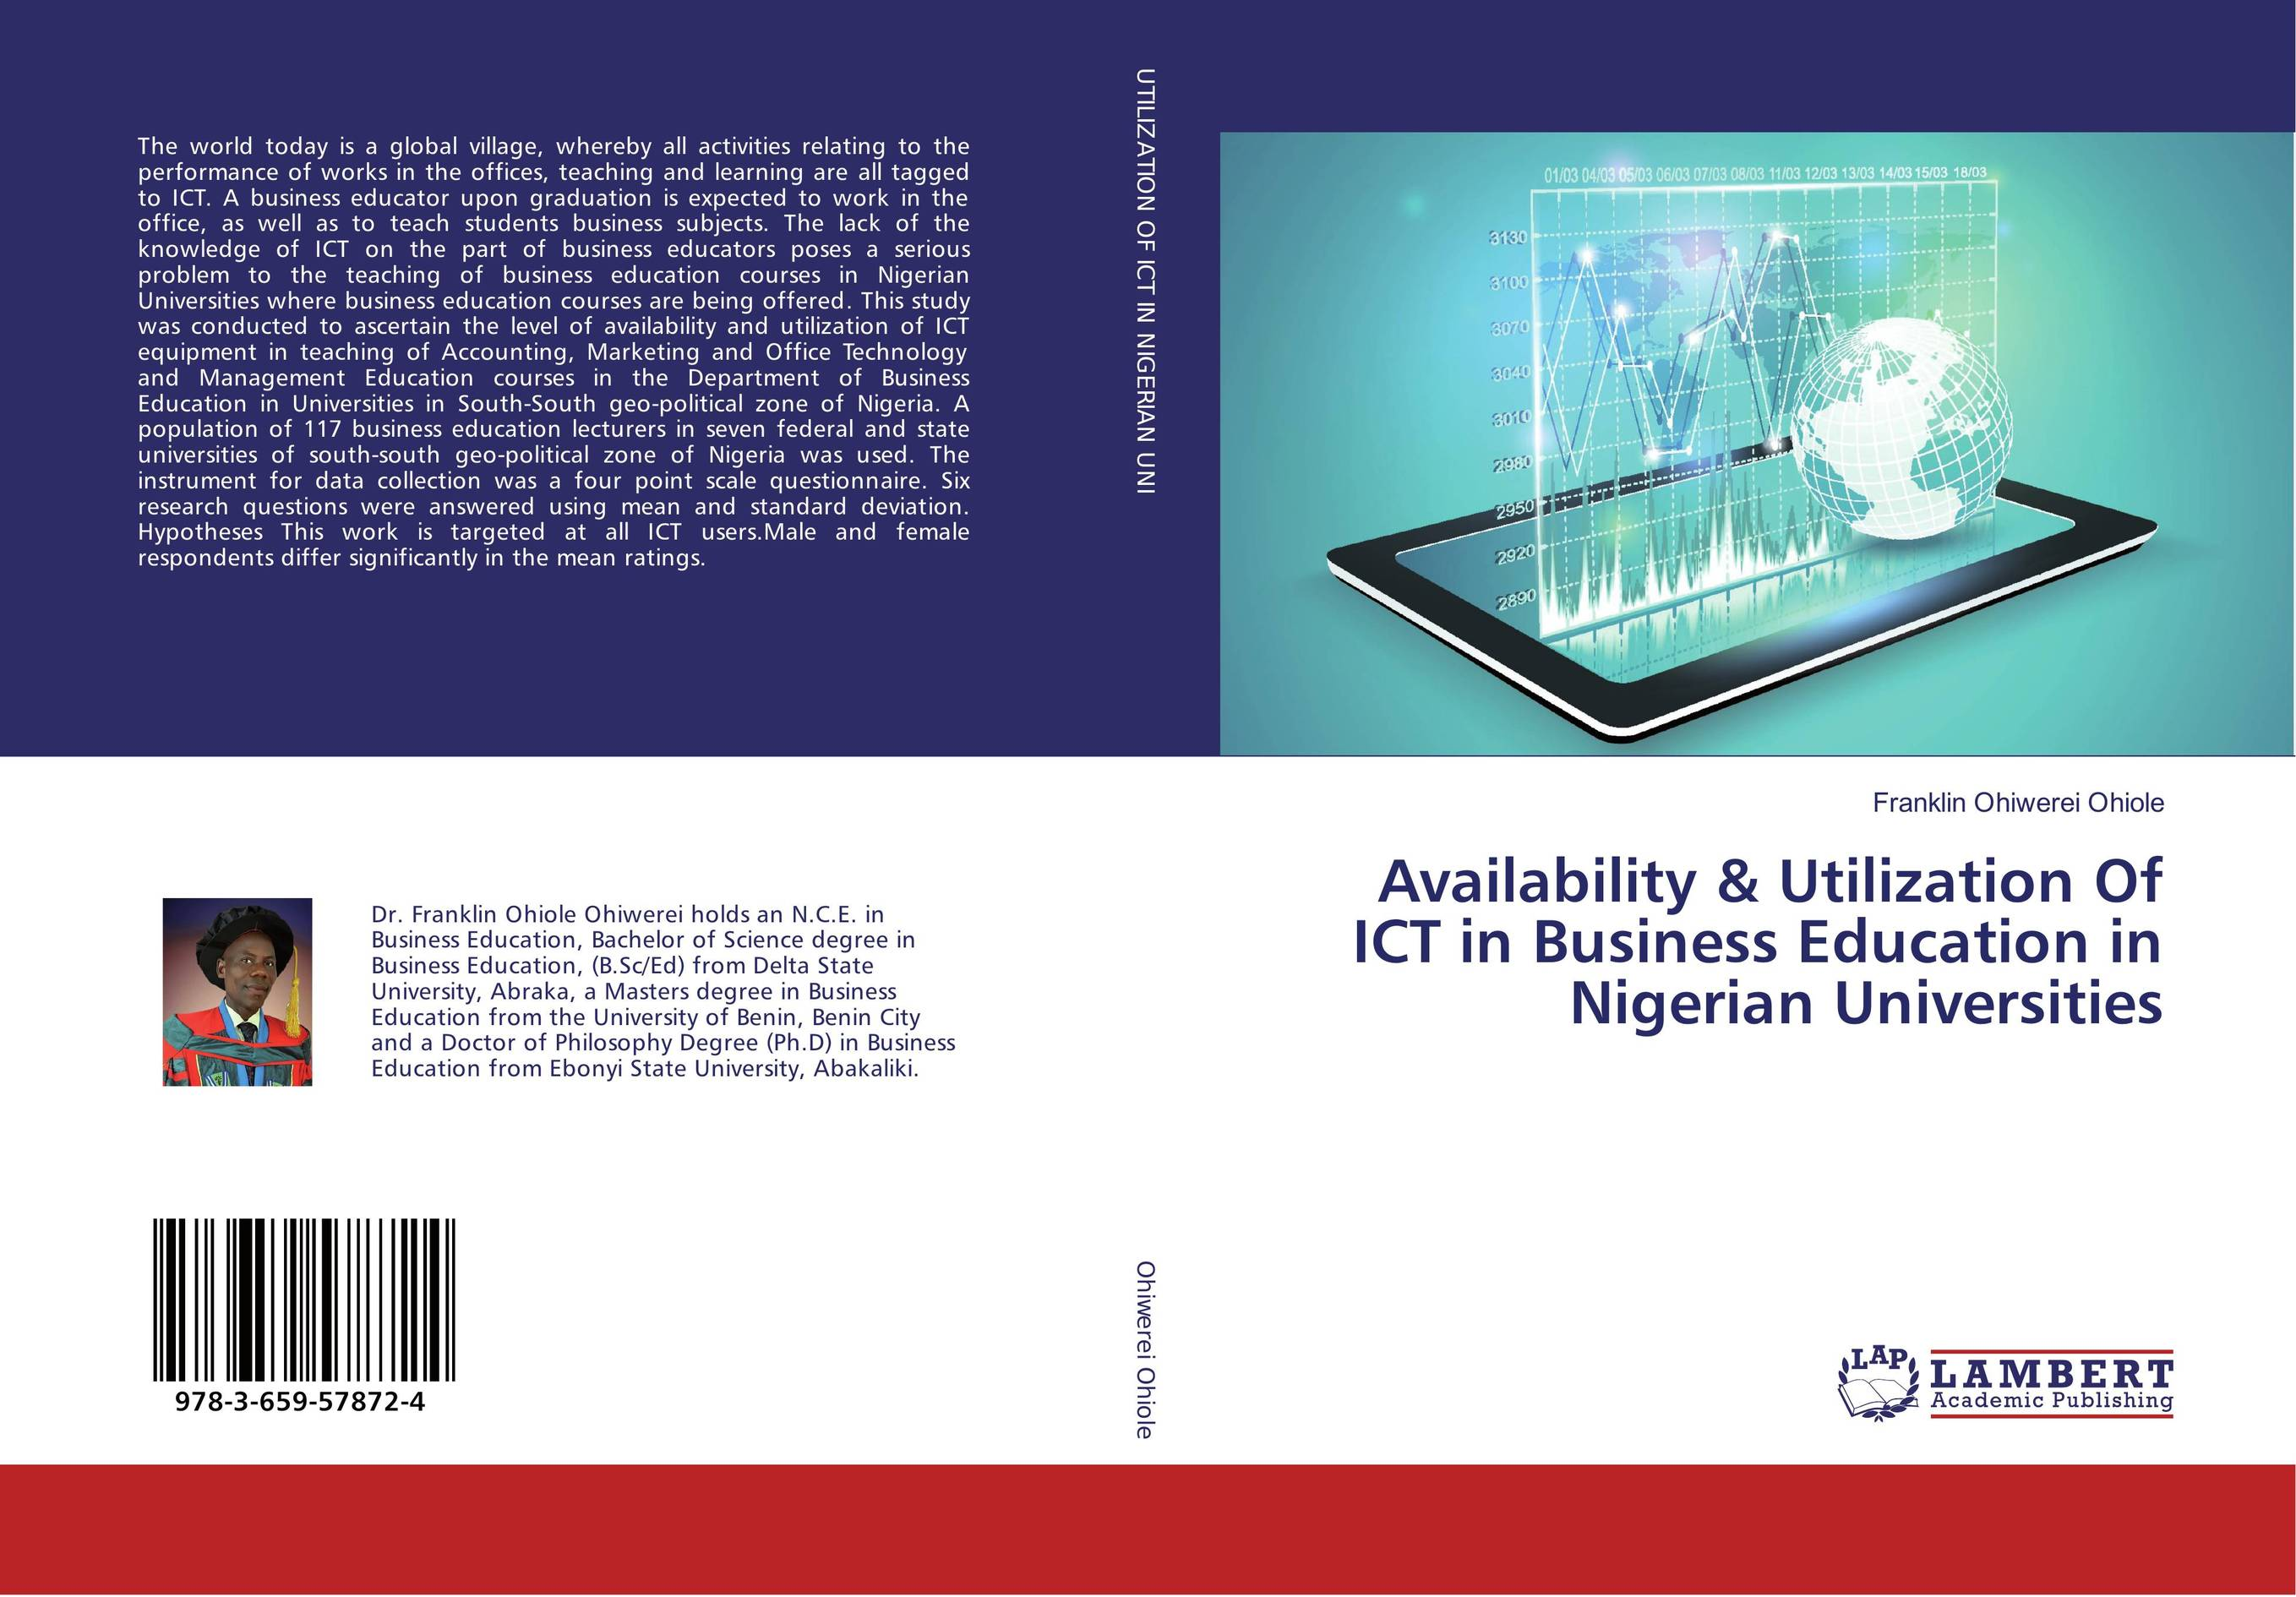 Availability & Utilization Of ICT in Business Education in Nigerian Universities system of education in nigeria